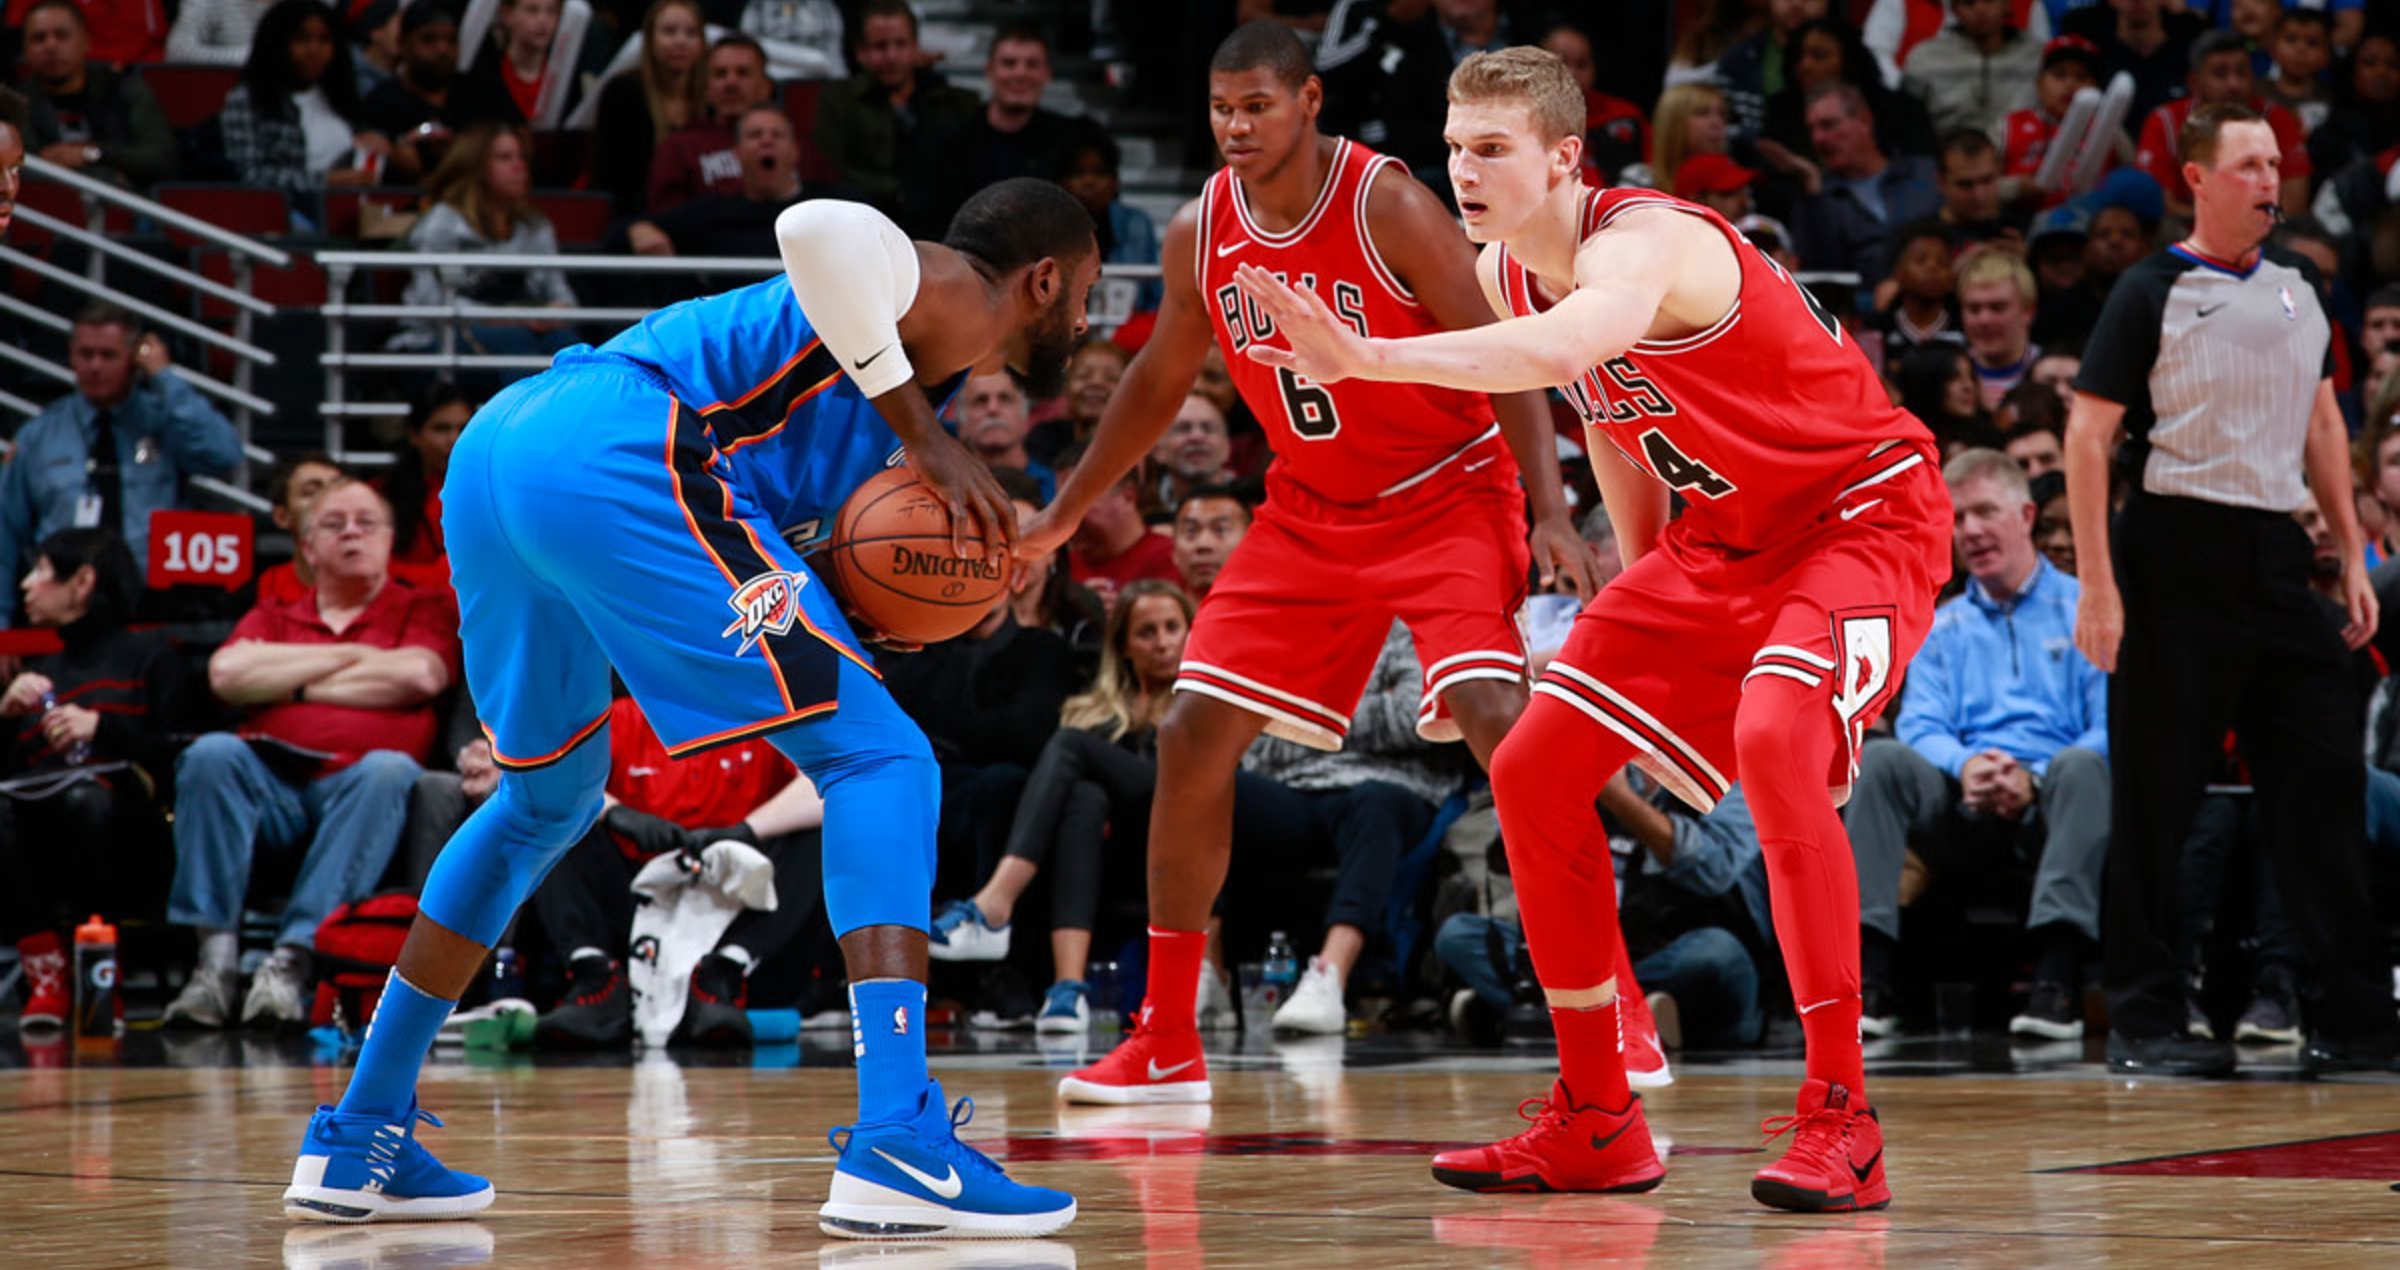 Lauri Markkanen #24 of the Chicago Bulls defends against the Oklahoma City Thunder on October 28, 2017 at the United Center in Chicago, Illinois.